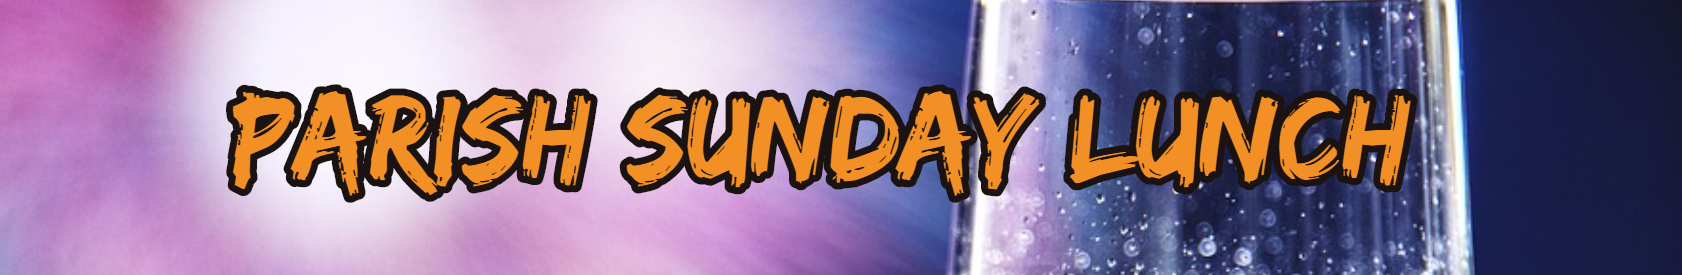 Parish Sunday Lunch – 22 March 2020